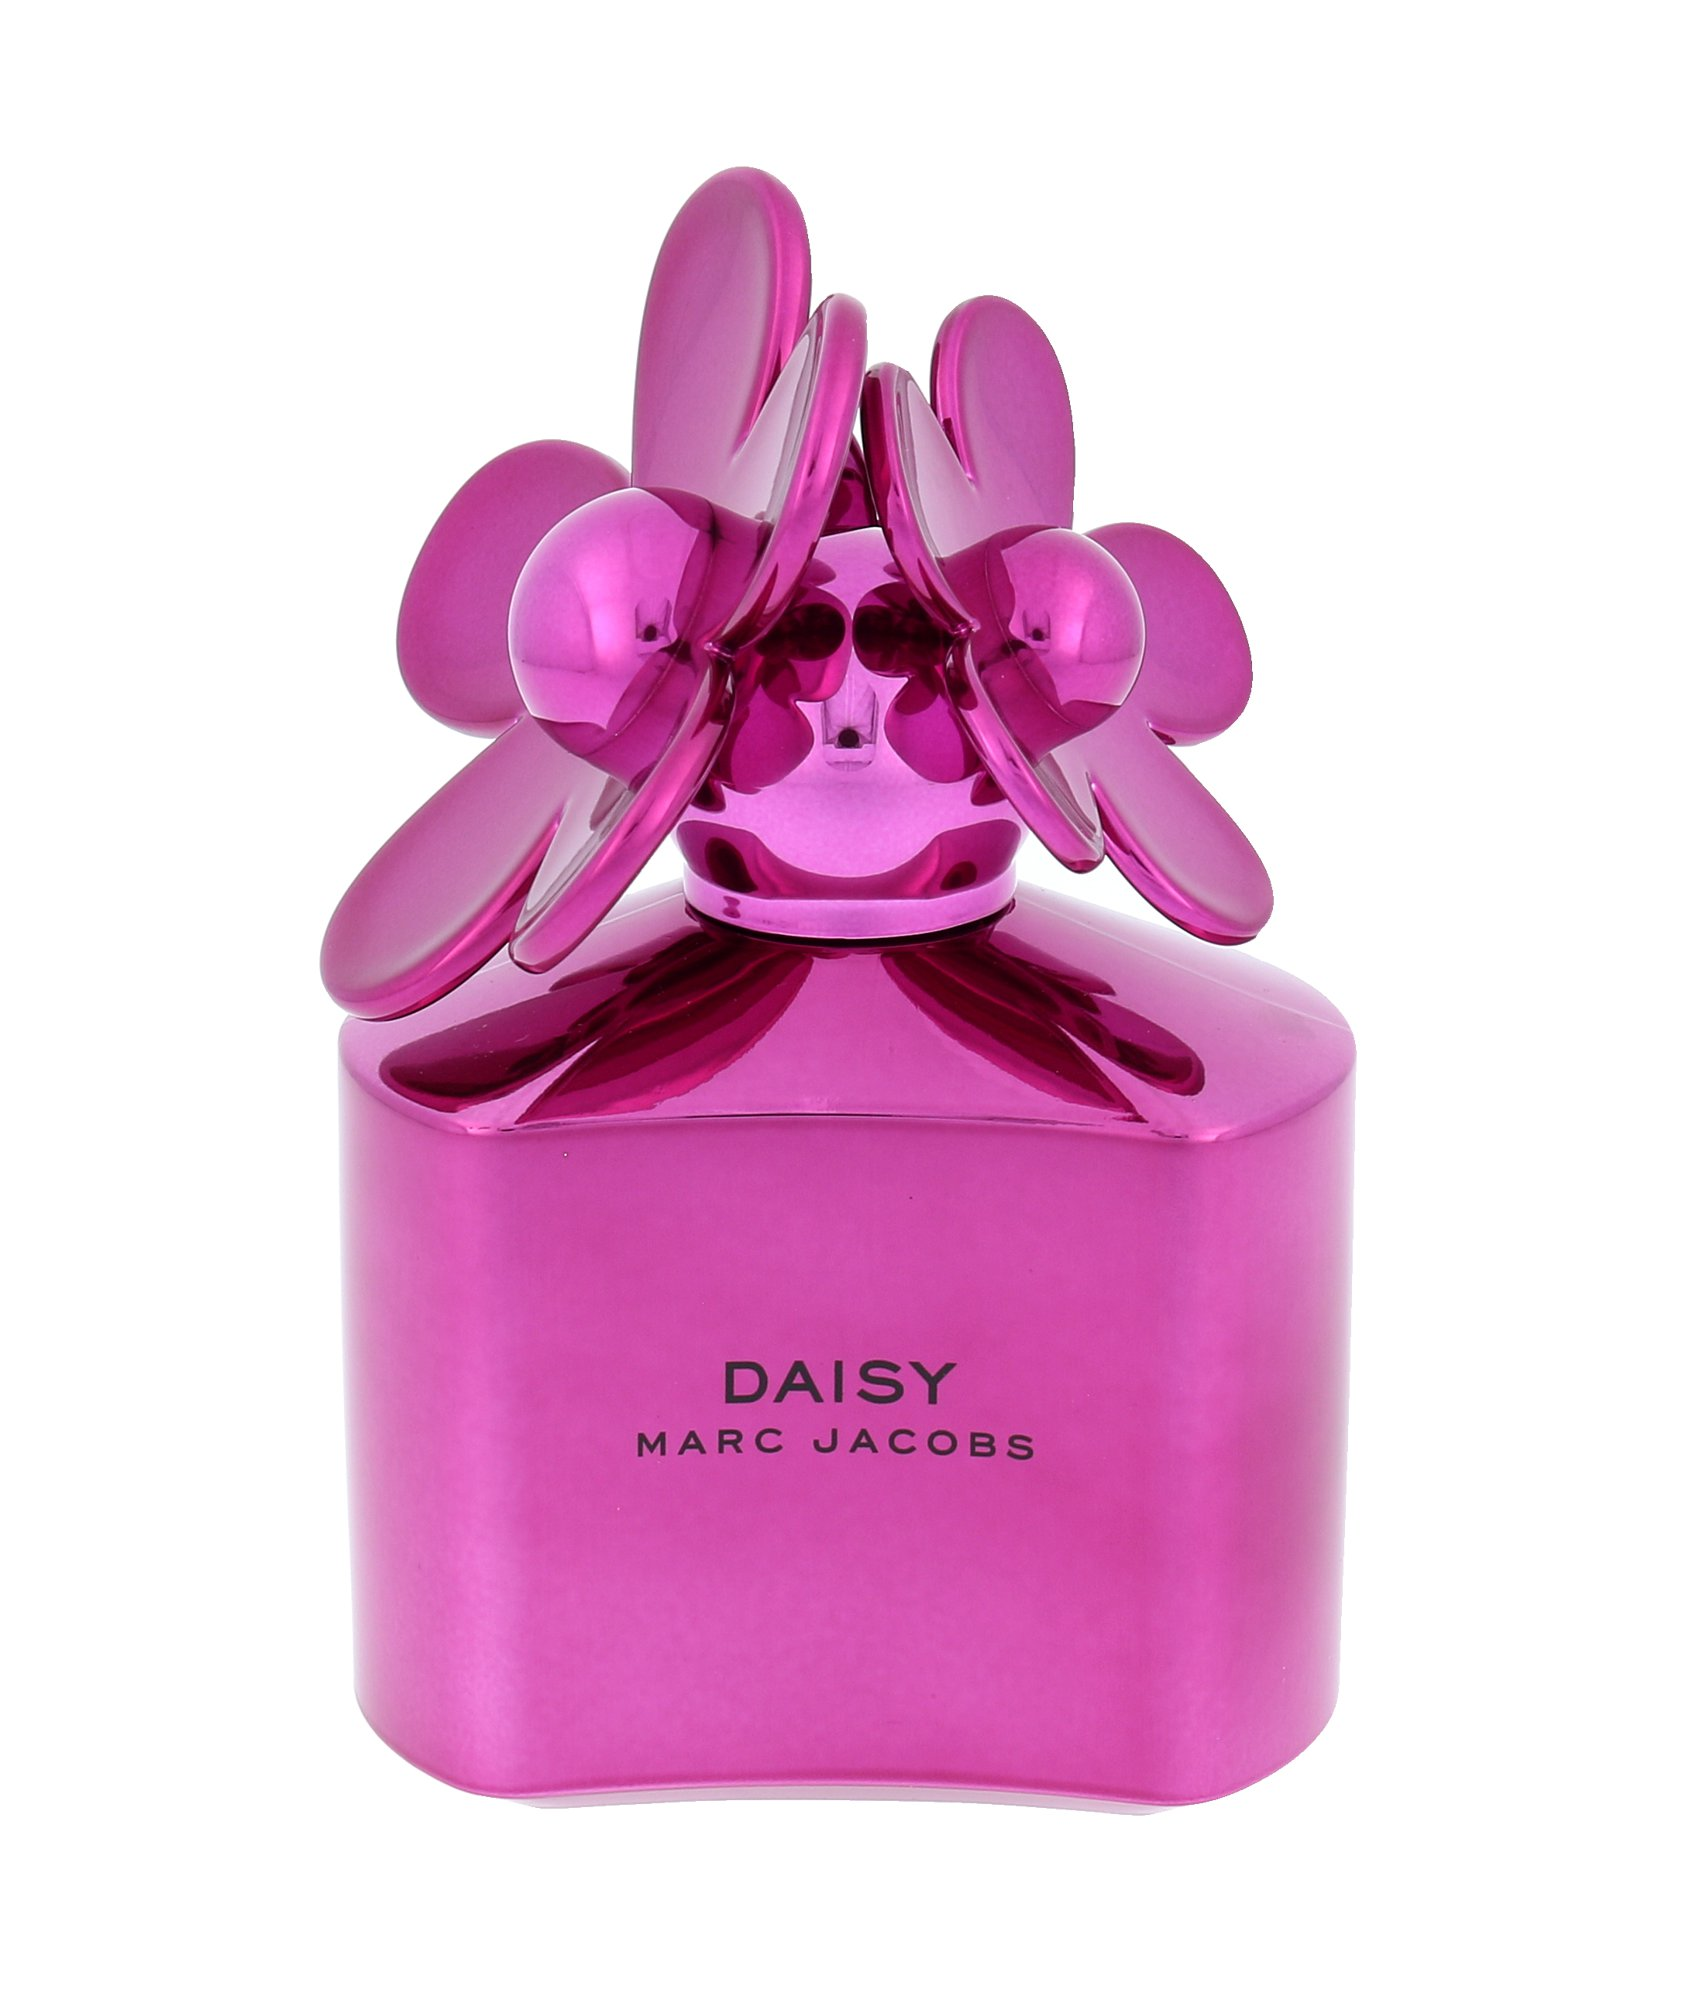 Marc Jacobs Daisy Shine Pink Edition, Odstrek Illatminta 3ml